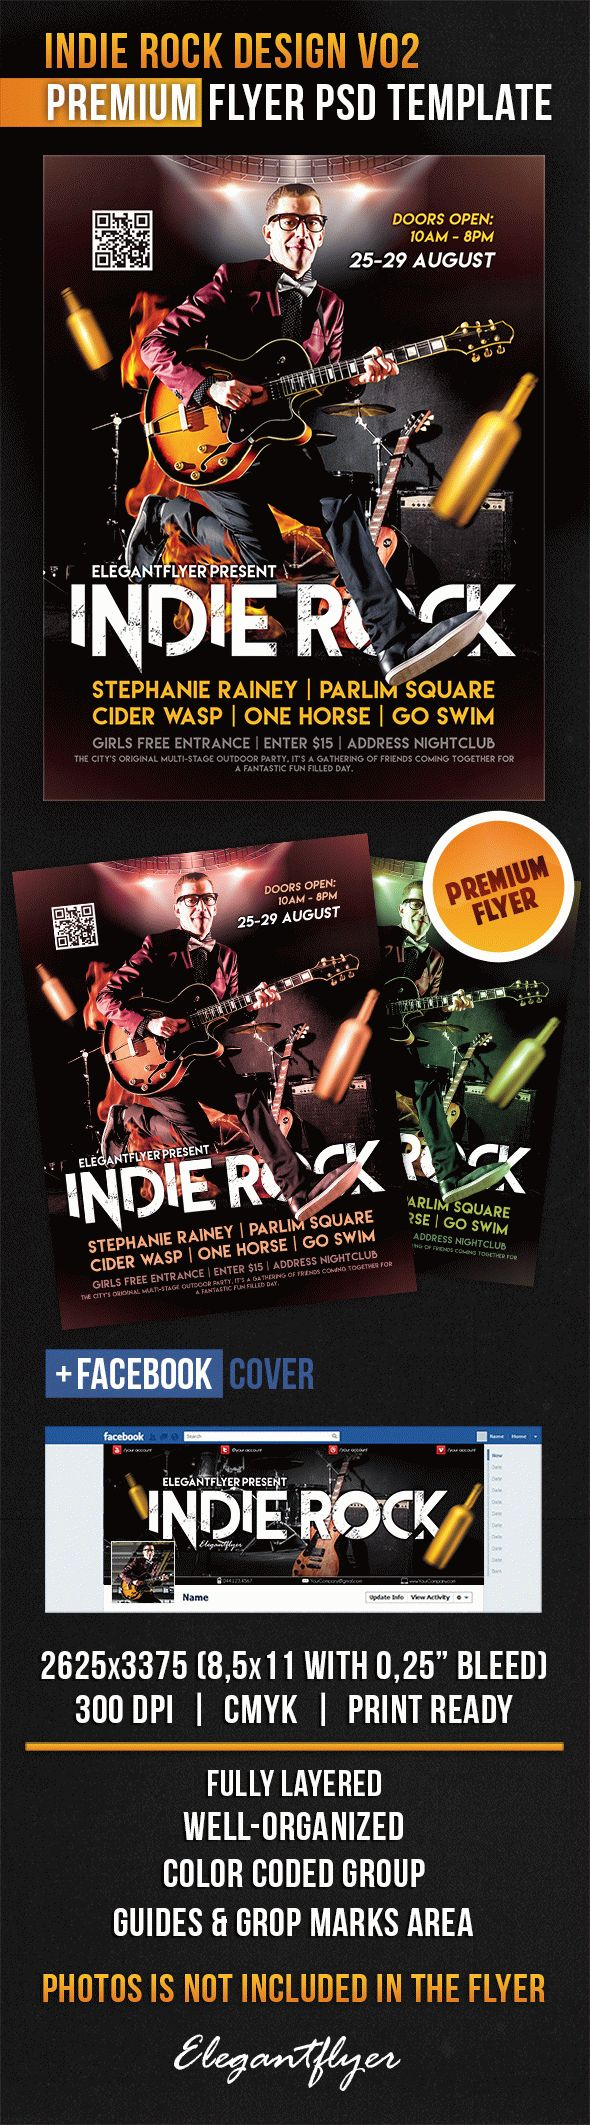 Indie Rock Design V02 – Flyer PSD Template + Facebook Cover